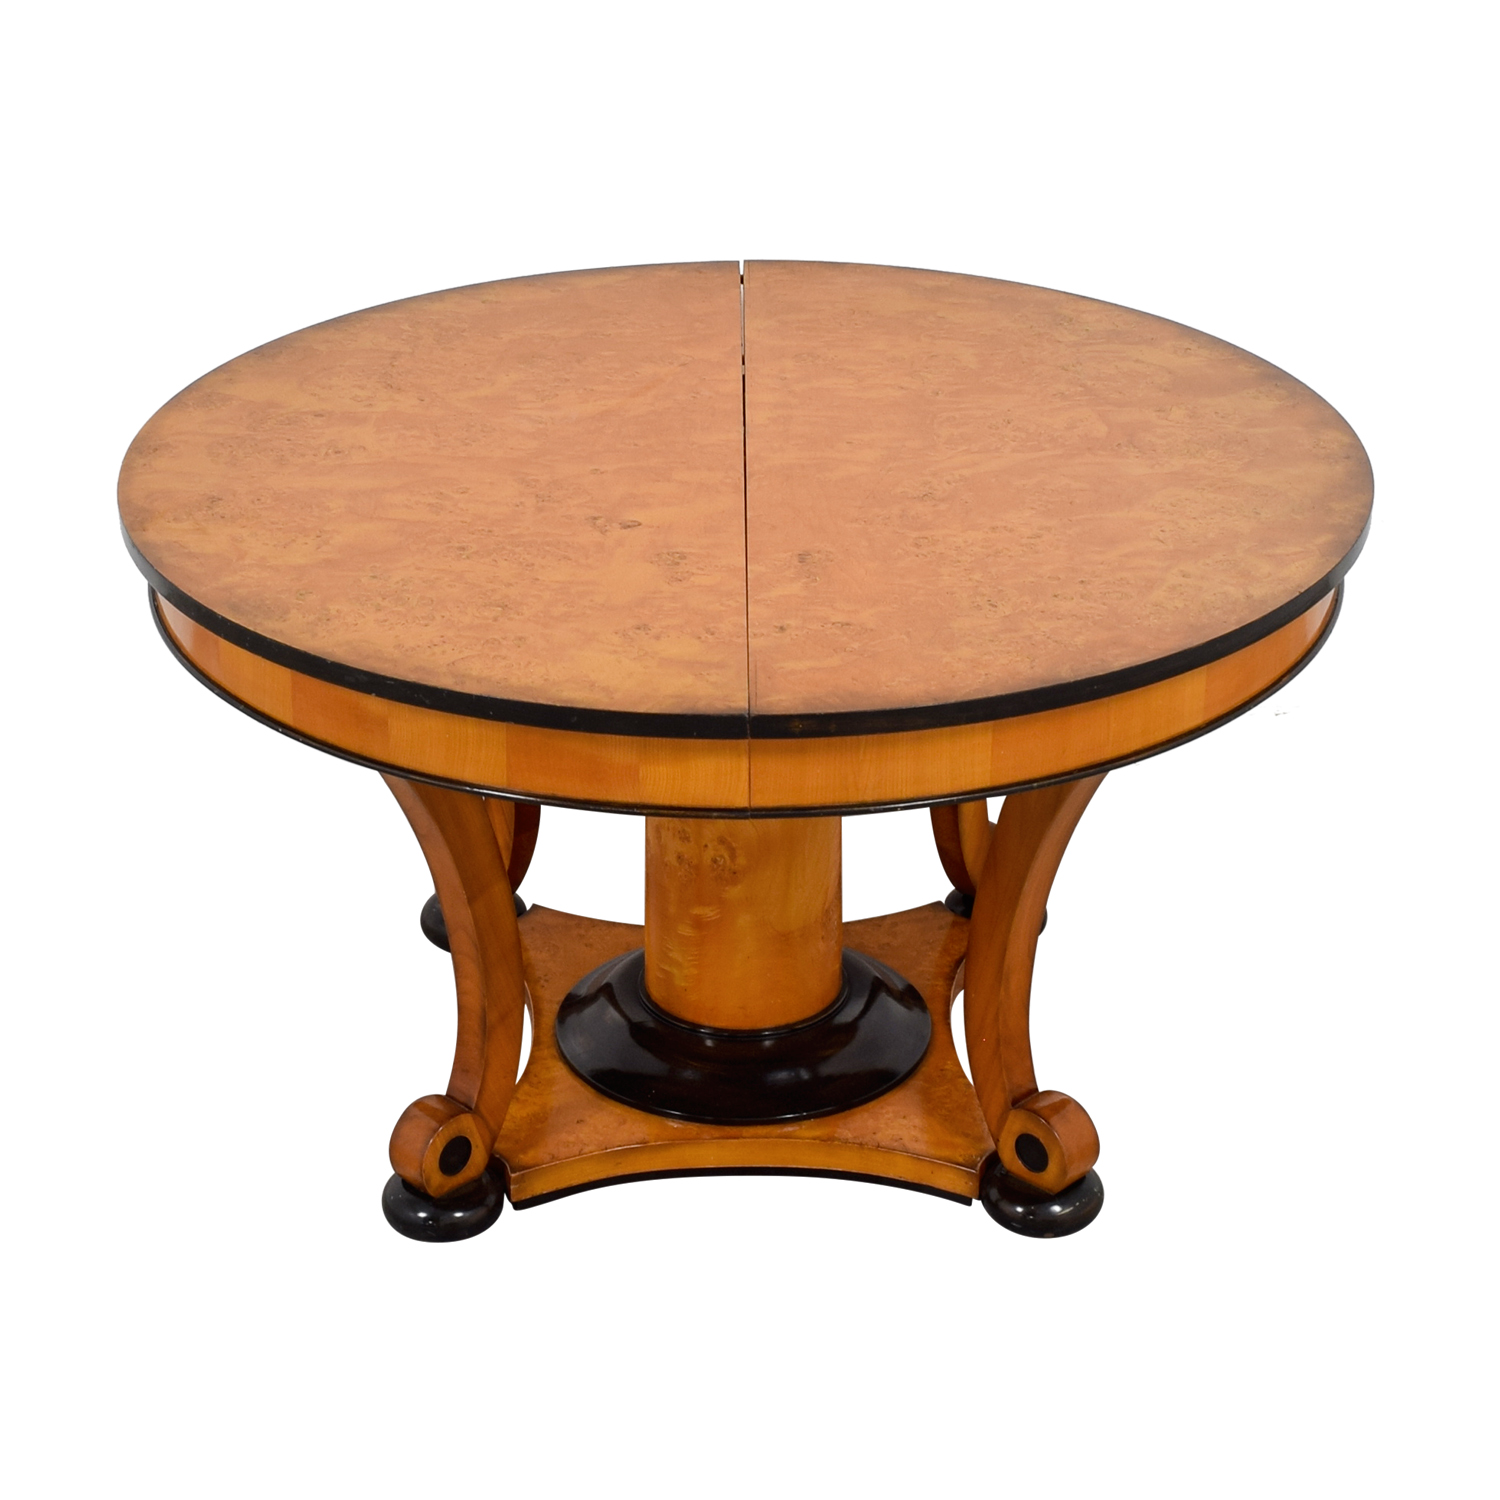 shop Bloomingdale's Bloomingdale's Beidermeider Round Cherry Wood  Dining Table online